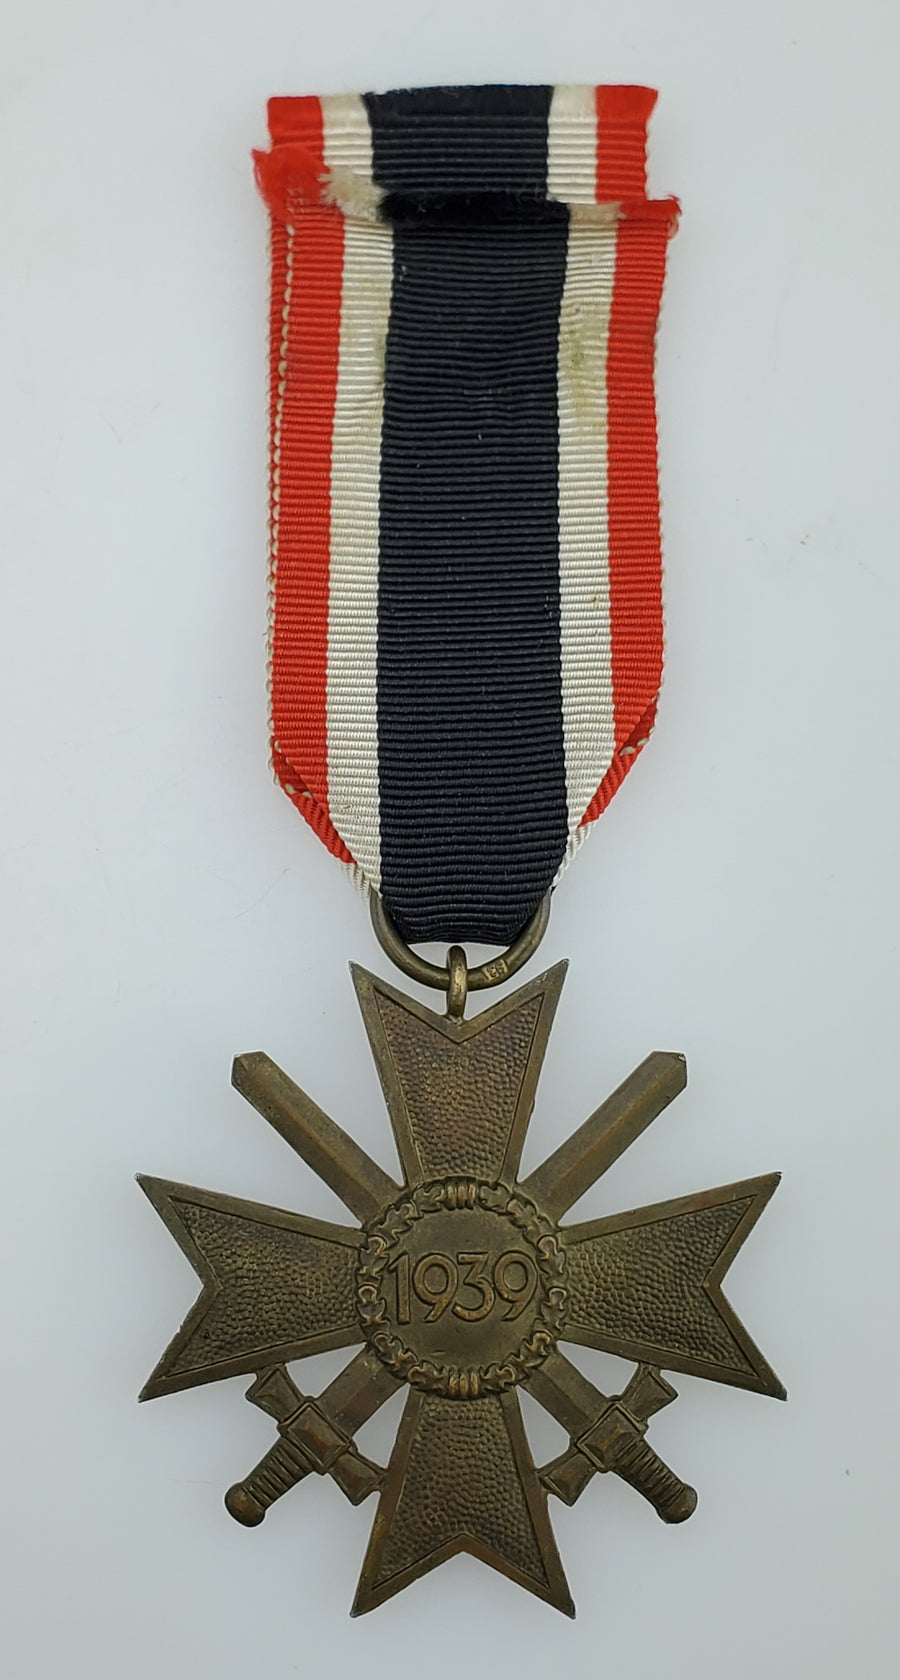 WW2 German War Merit Cross 2nd Class with Swords 1939 Early Issue with Ribbon - Maker Mark: Richard Simm & Sohne